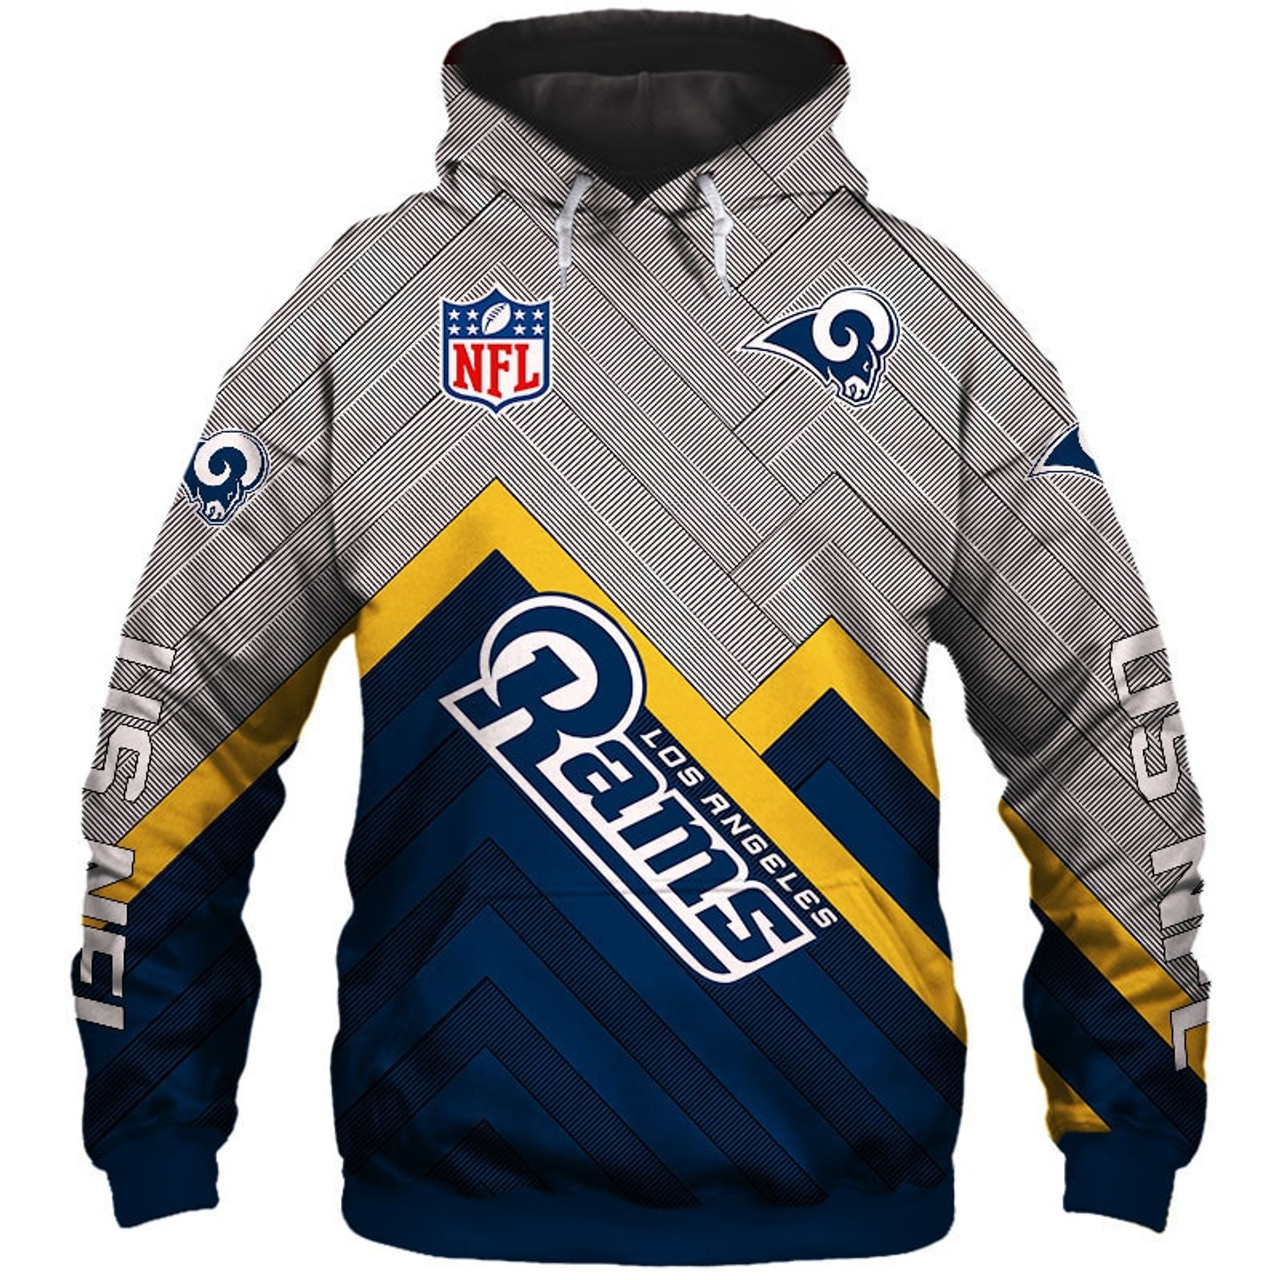 los angeles rams sweatshirt